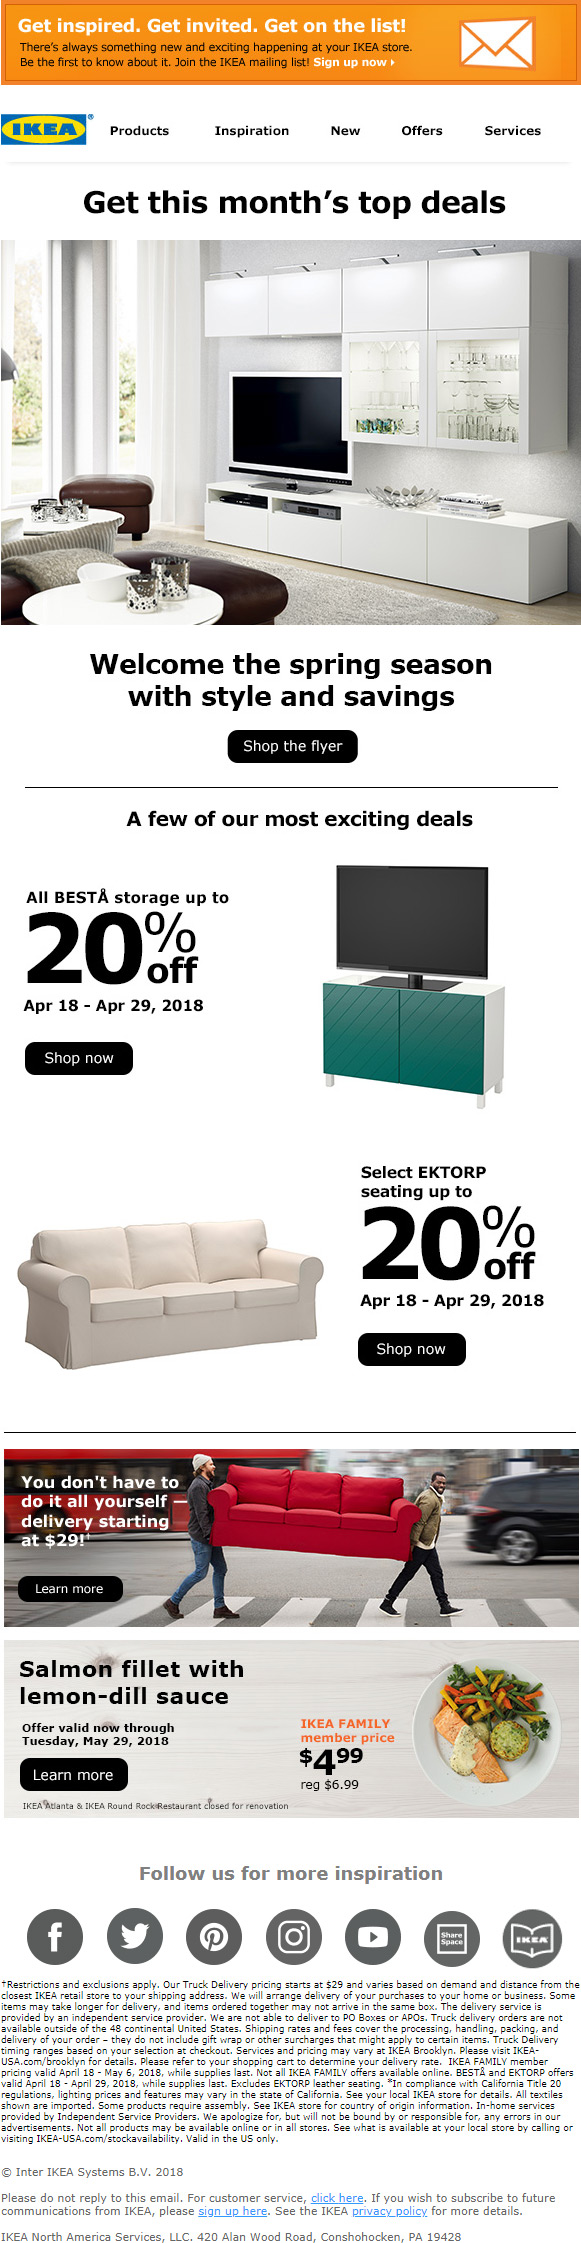 Ikea Sofa Round Rock Email Creative Services